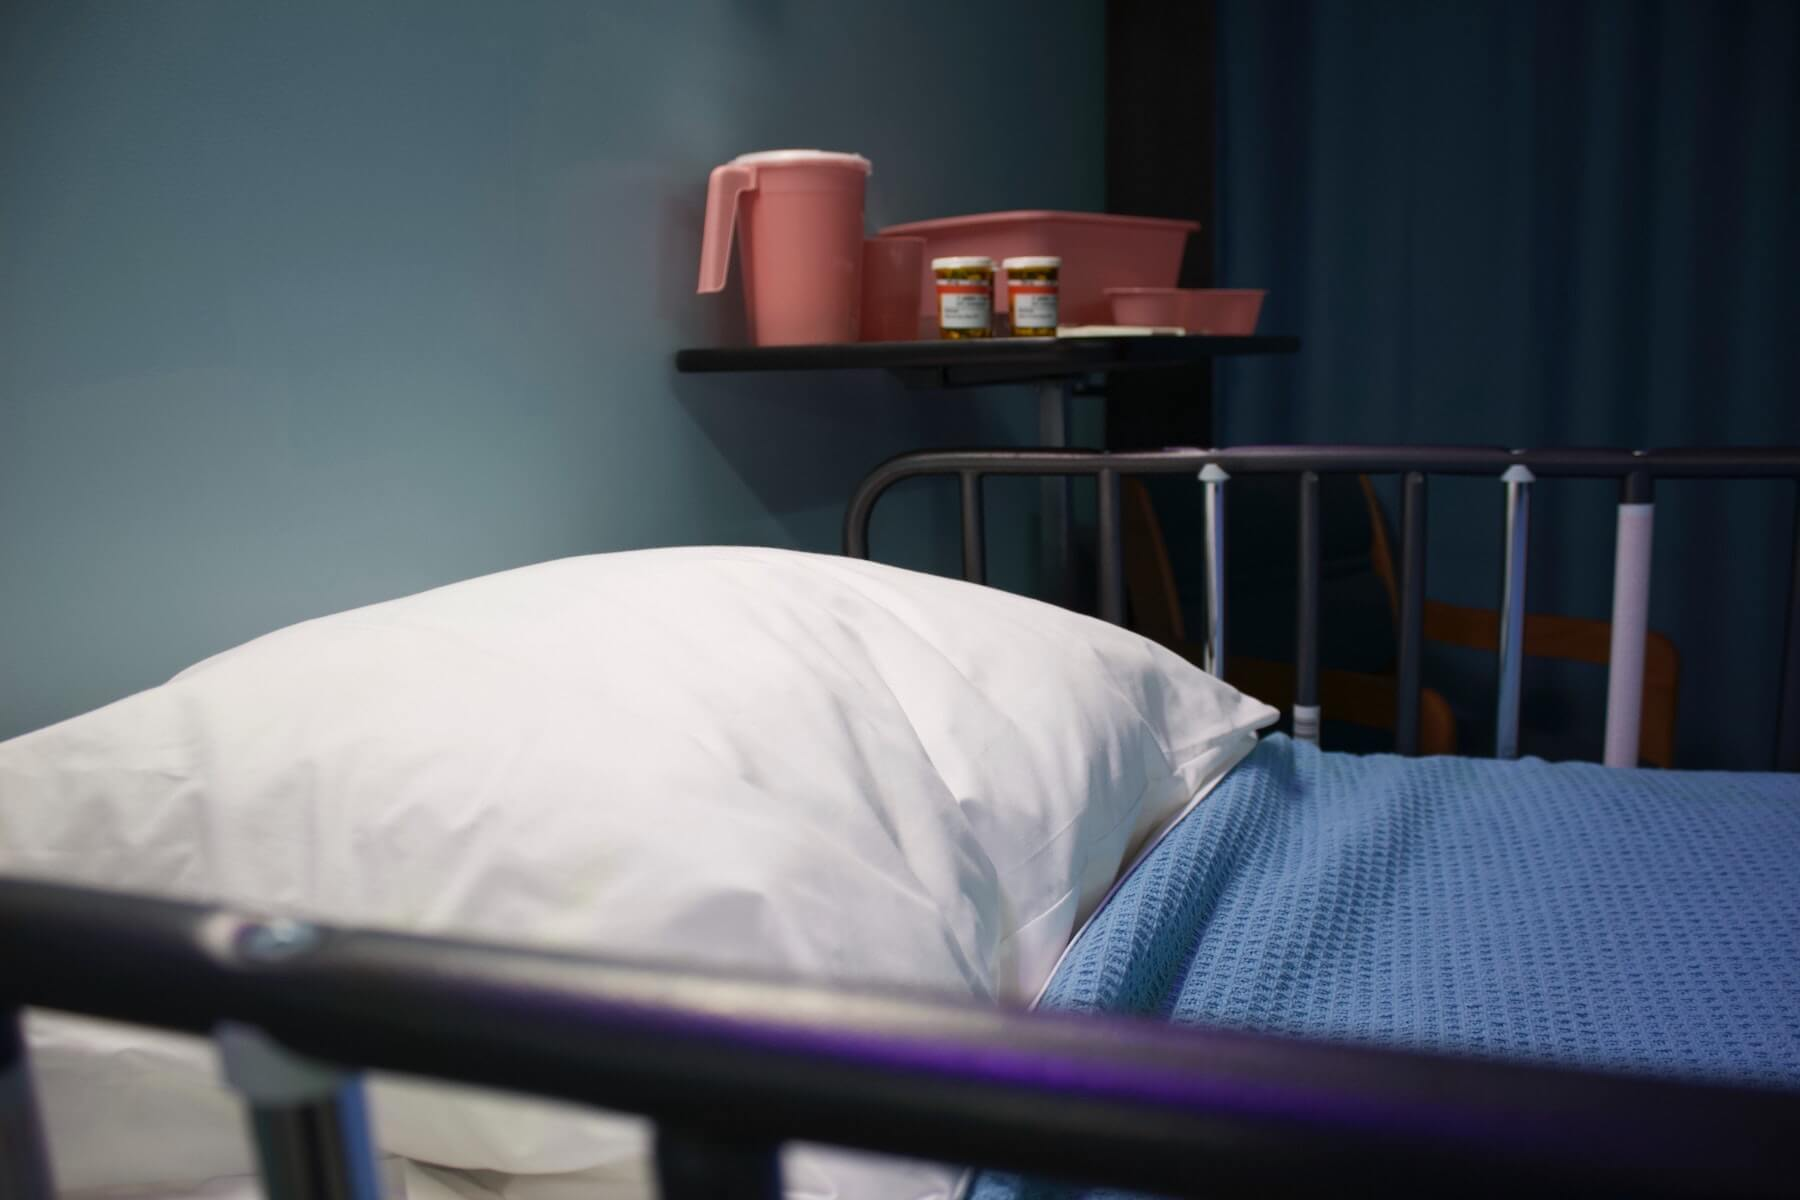 hospital bed in foreground with medications in the background hospice nursing